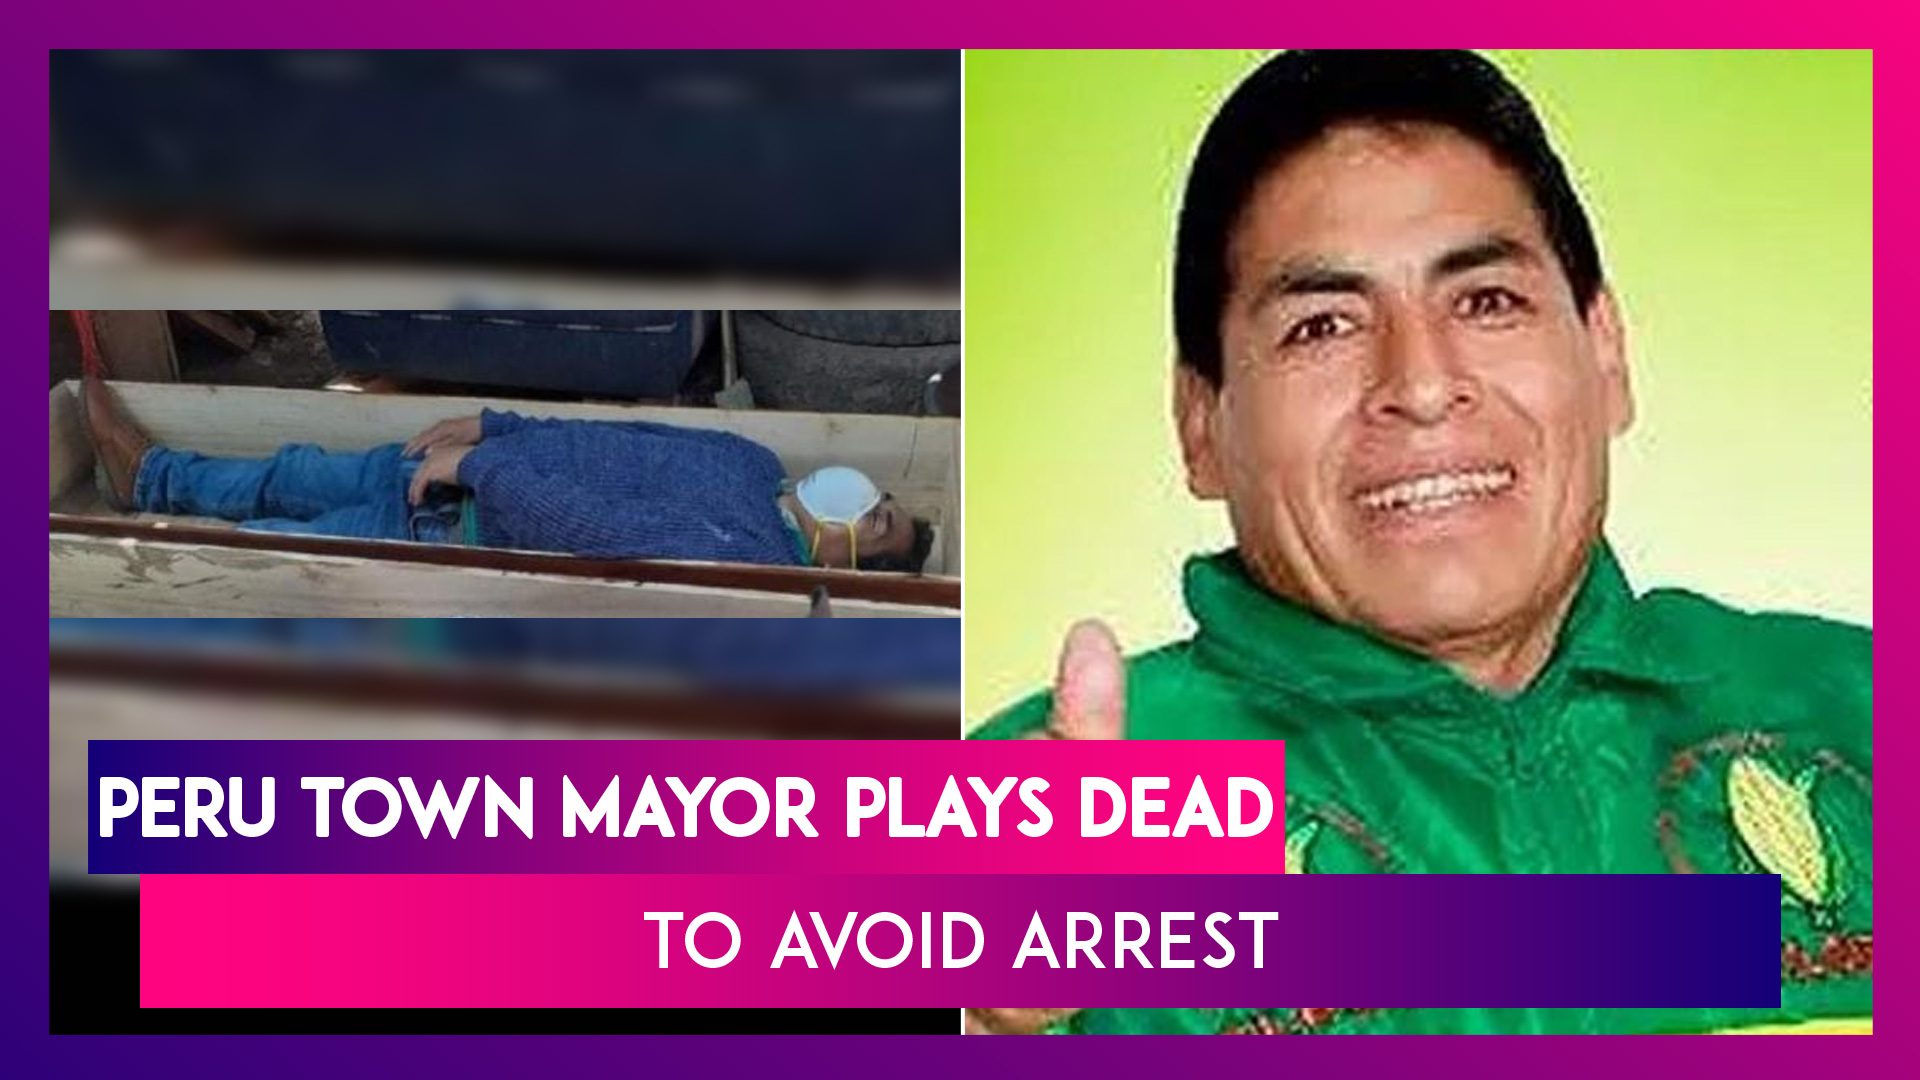 Peru Town Mayor Plays Dead In Coffin To Avoid Arrest For Violating Lockdown To Drink With Friends